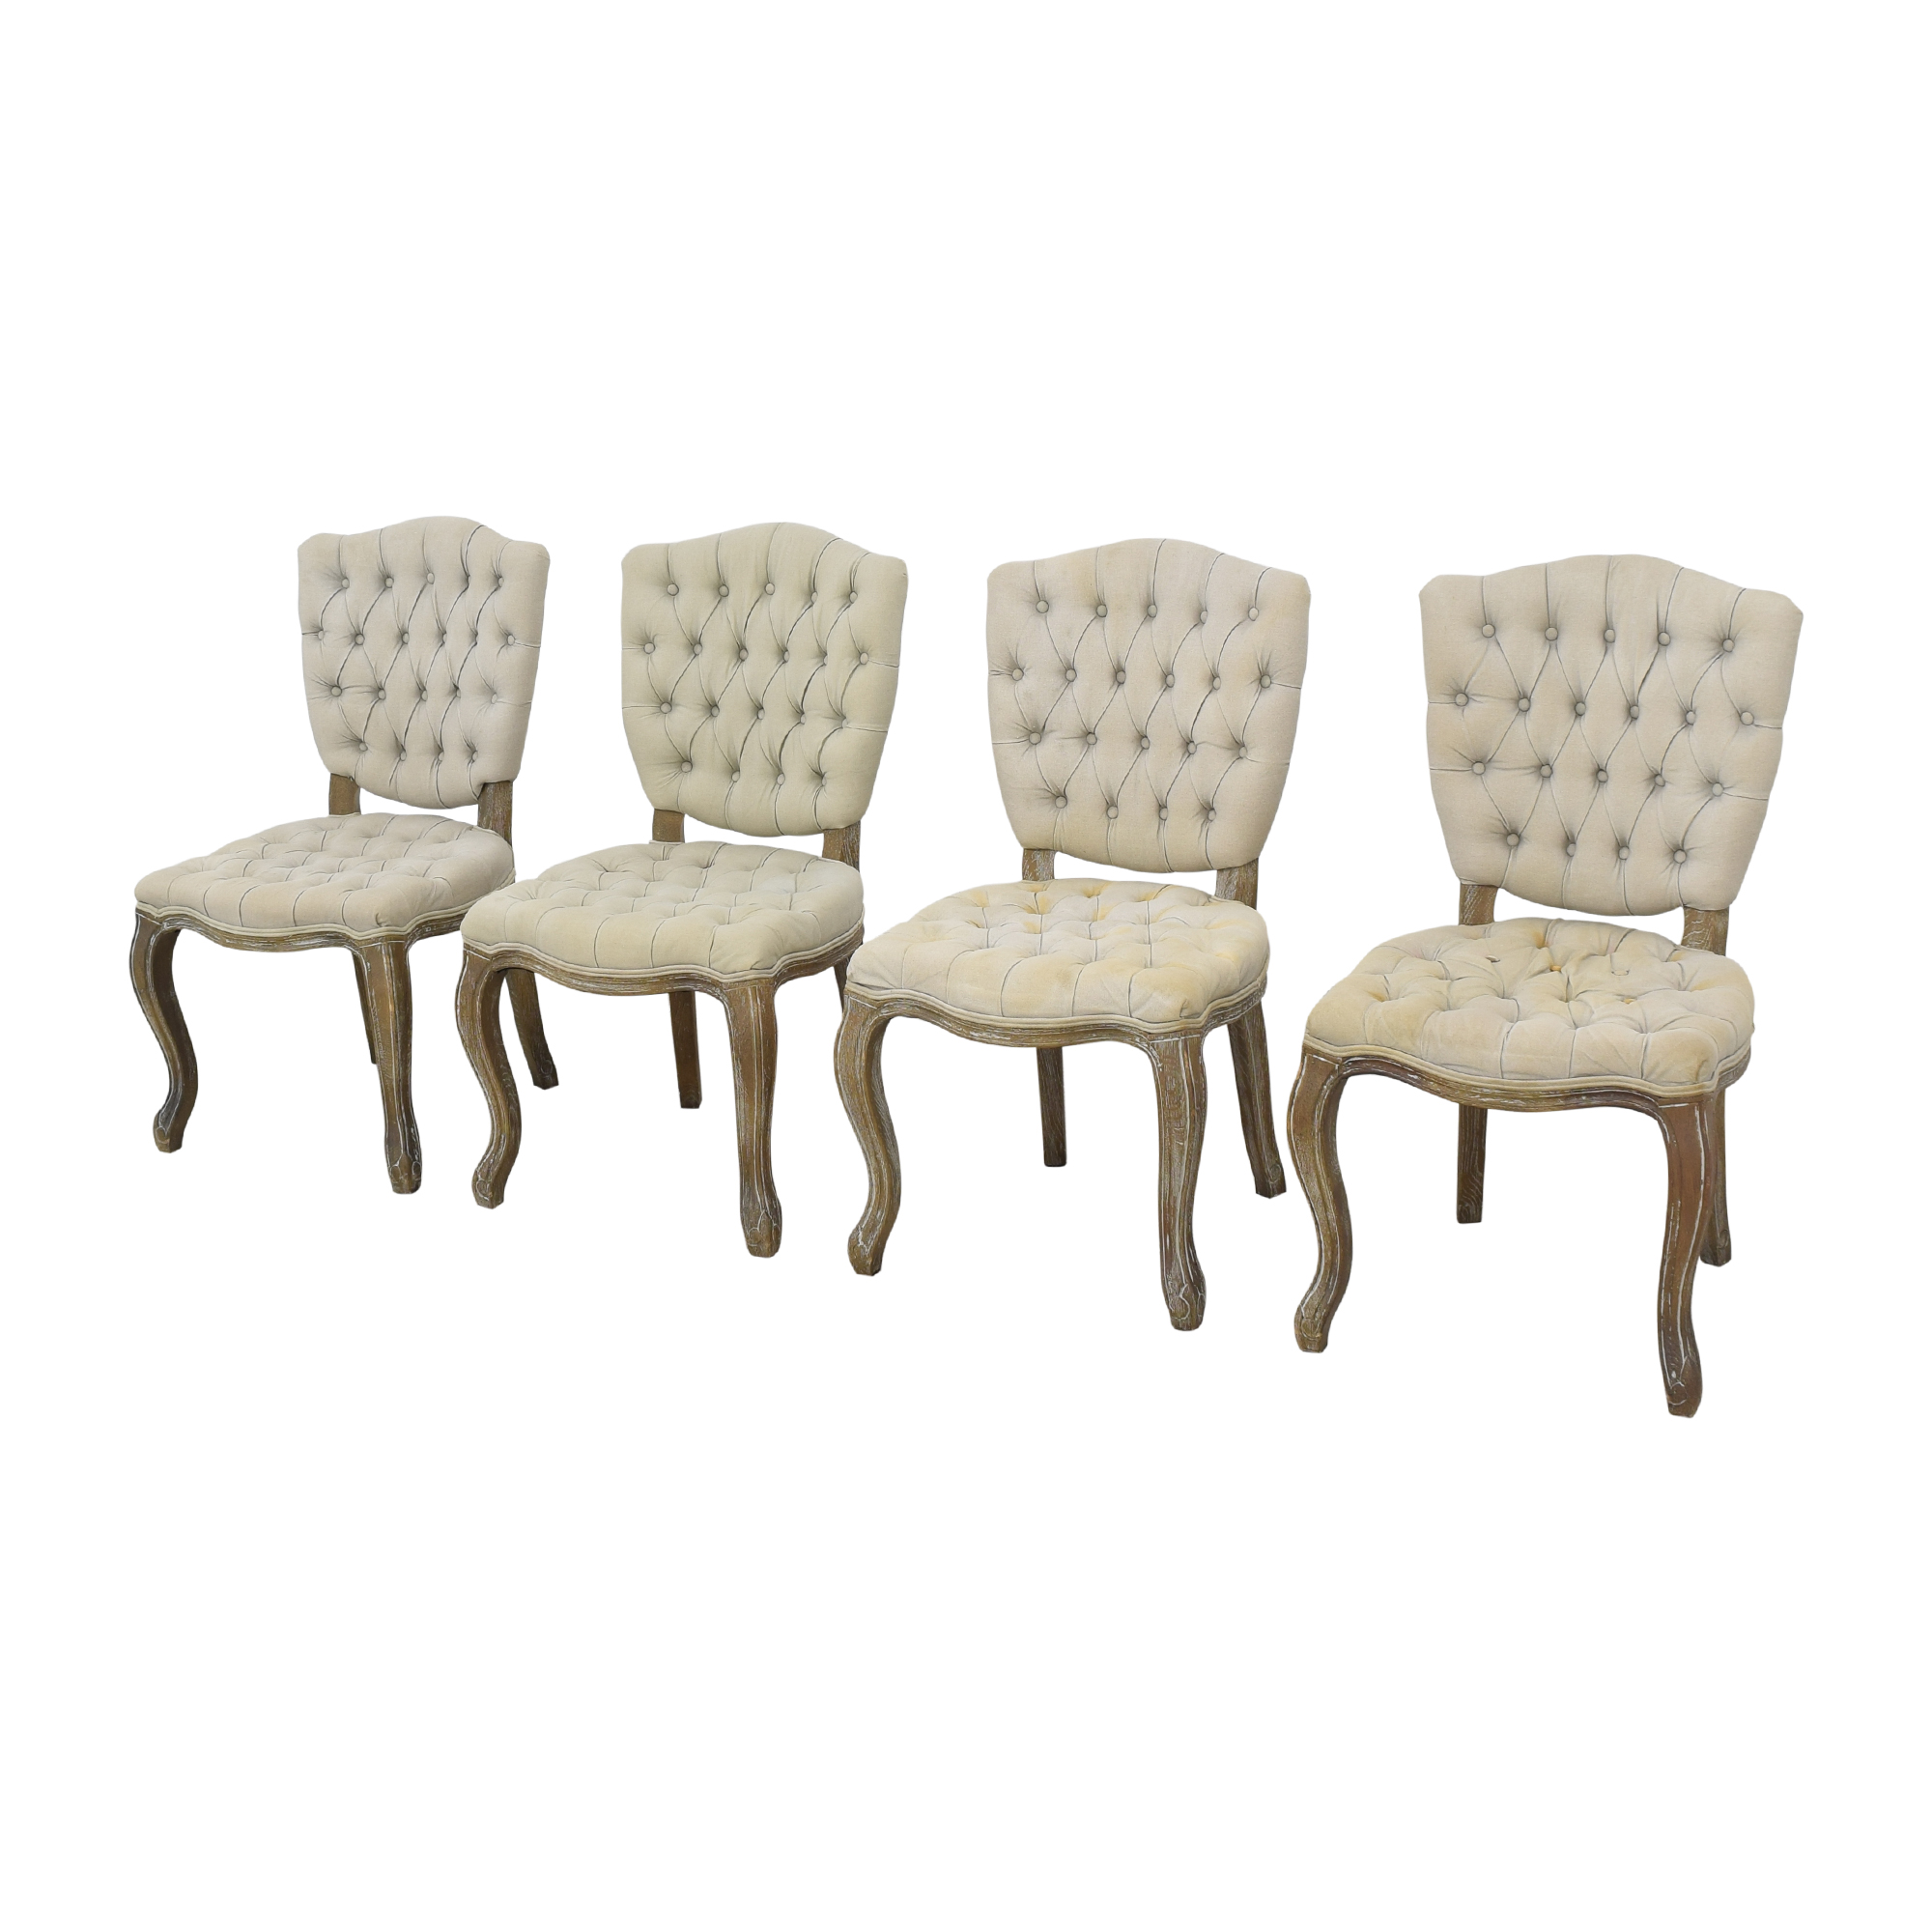 shop Arhaus Country French Tufted Dining Chairs Arhaus